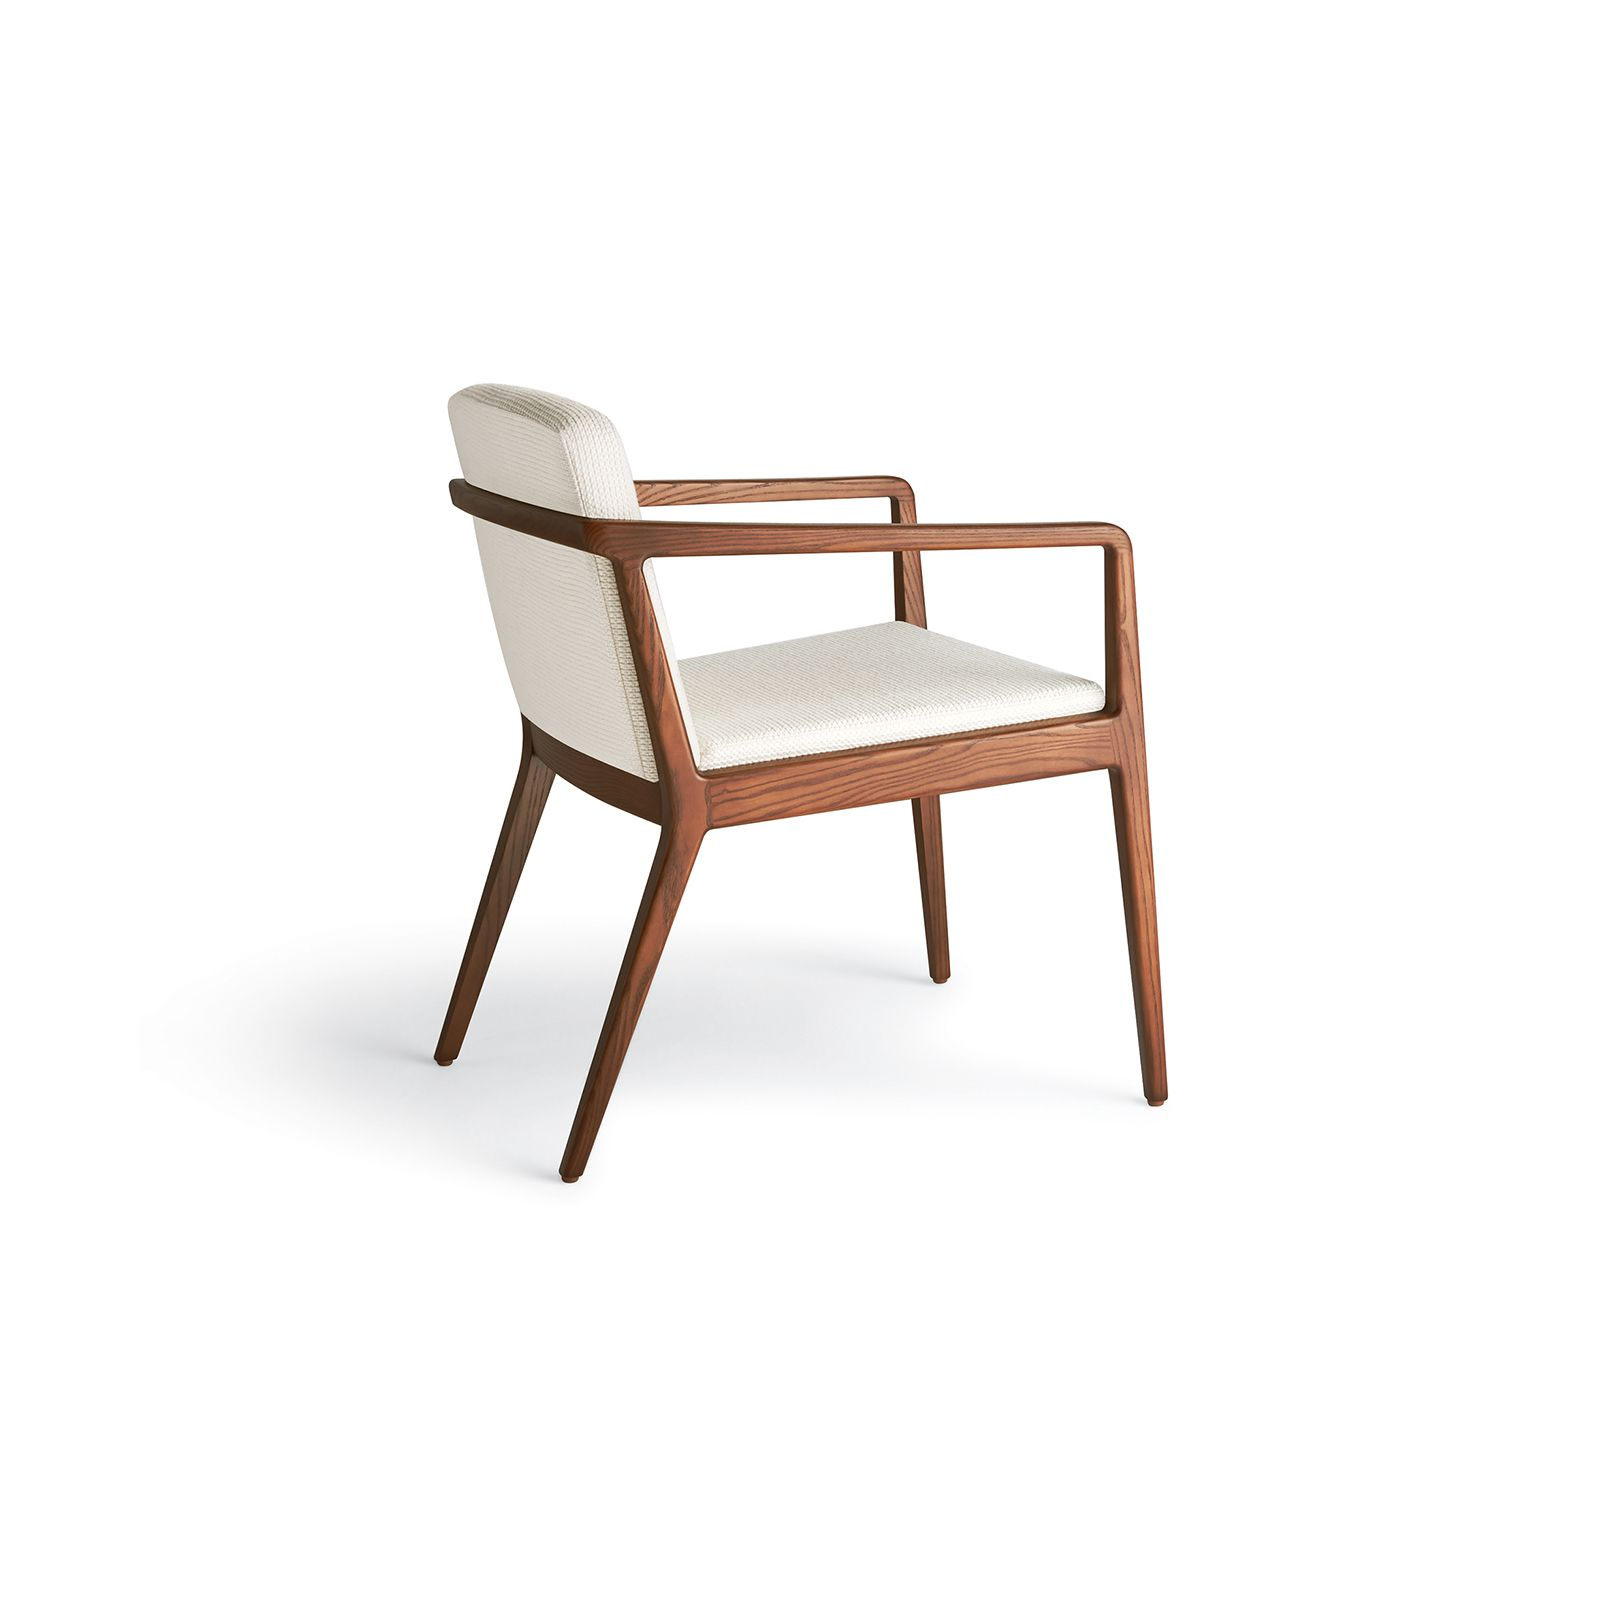 KINDRED CHAIR